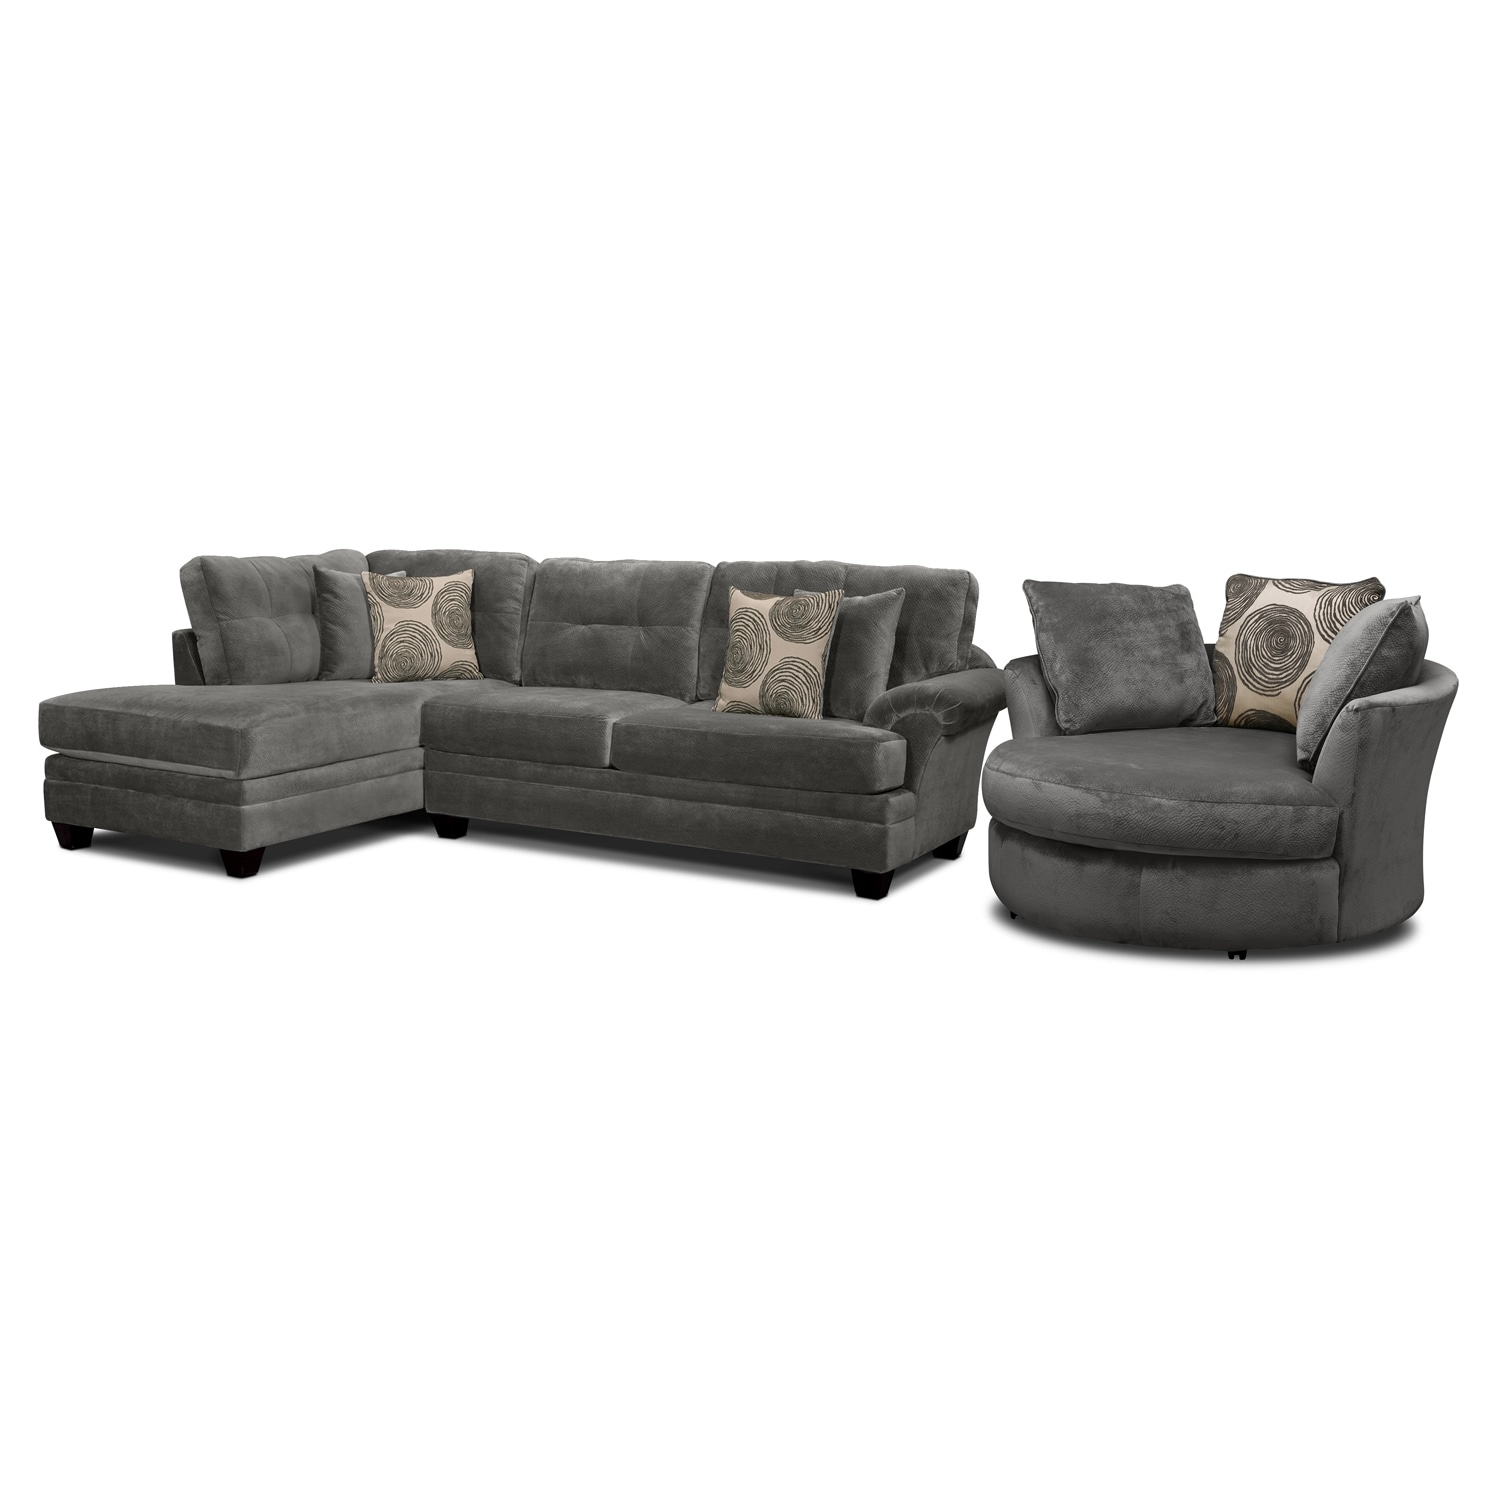 Living Room Furniture   Cordelle 2 Piece Sectional With Left Facing Chaise  And Swivel